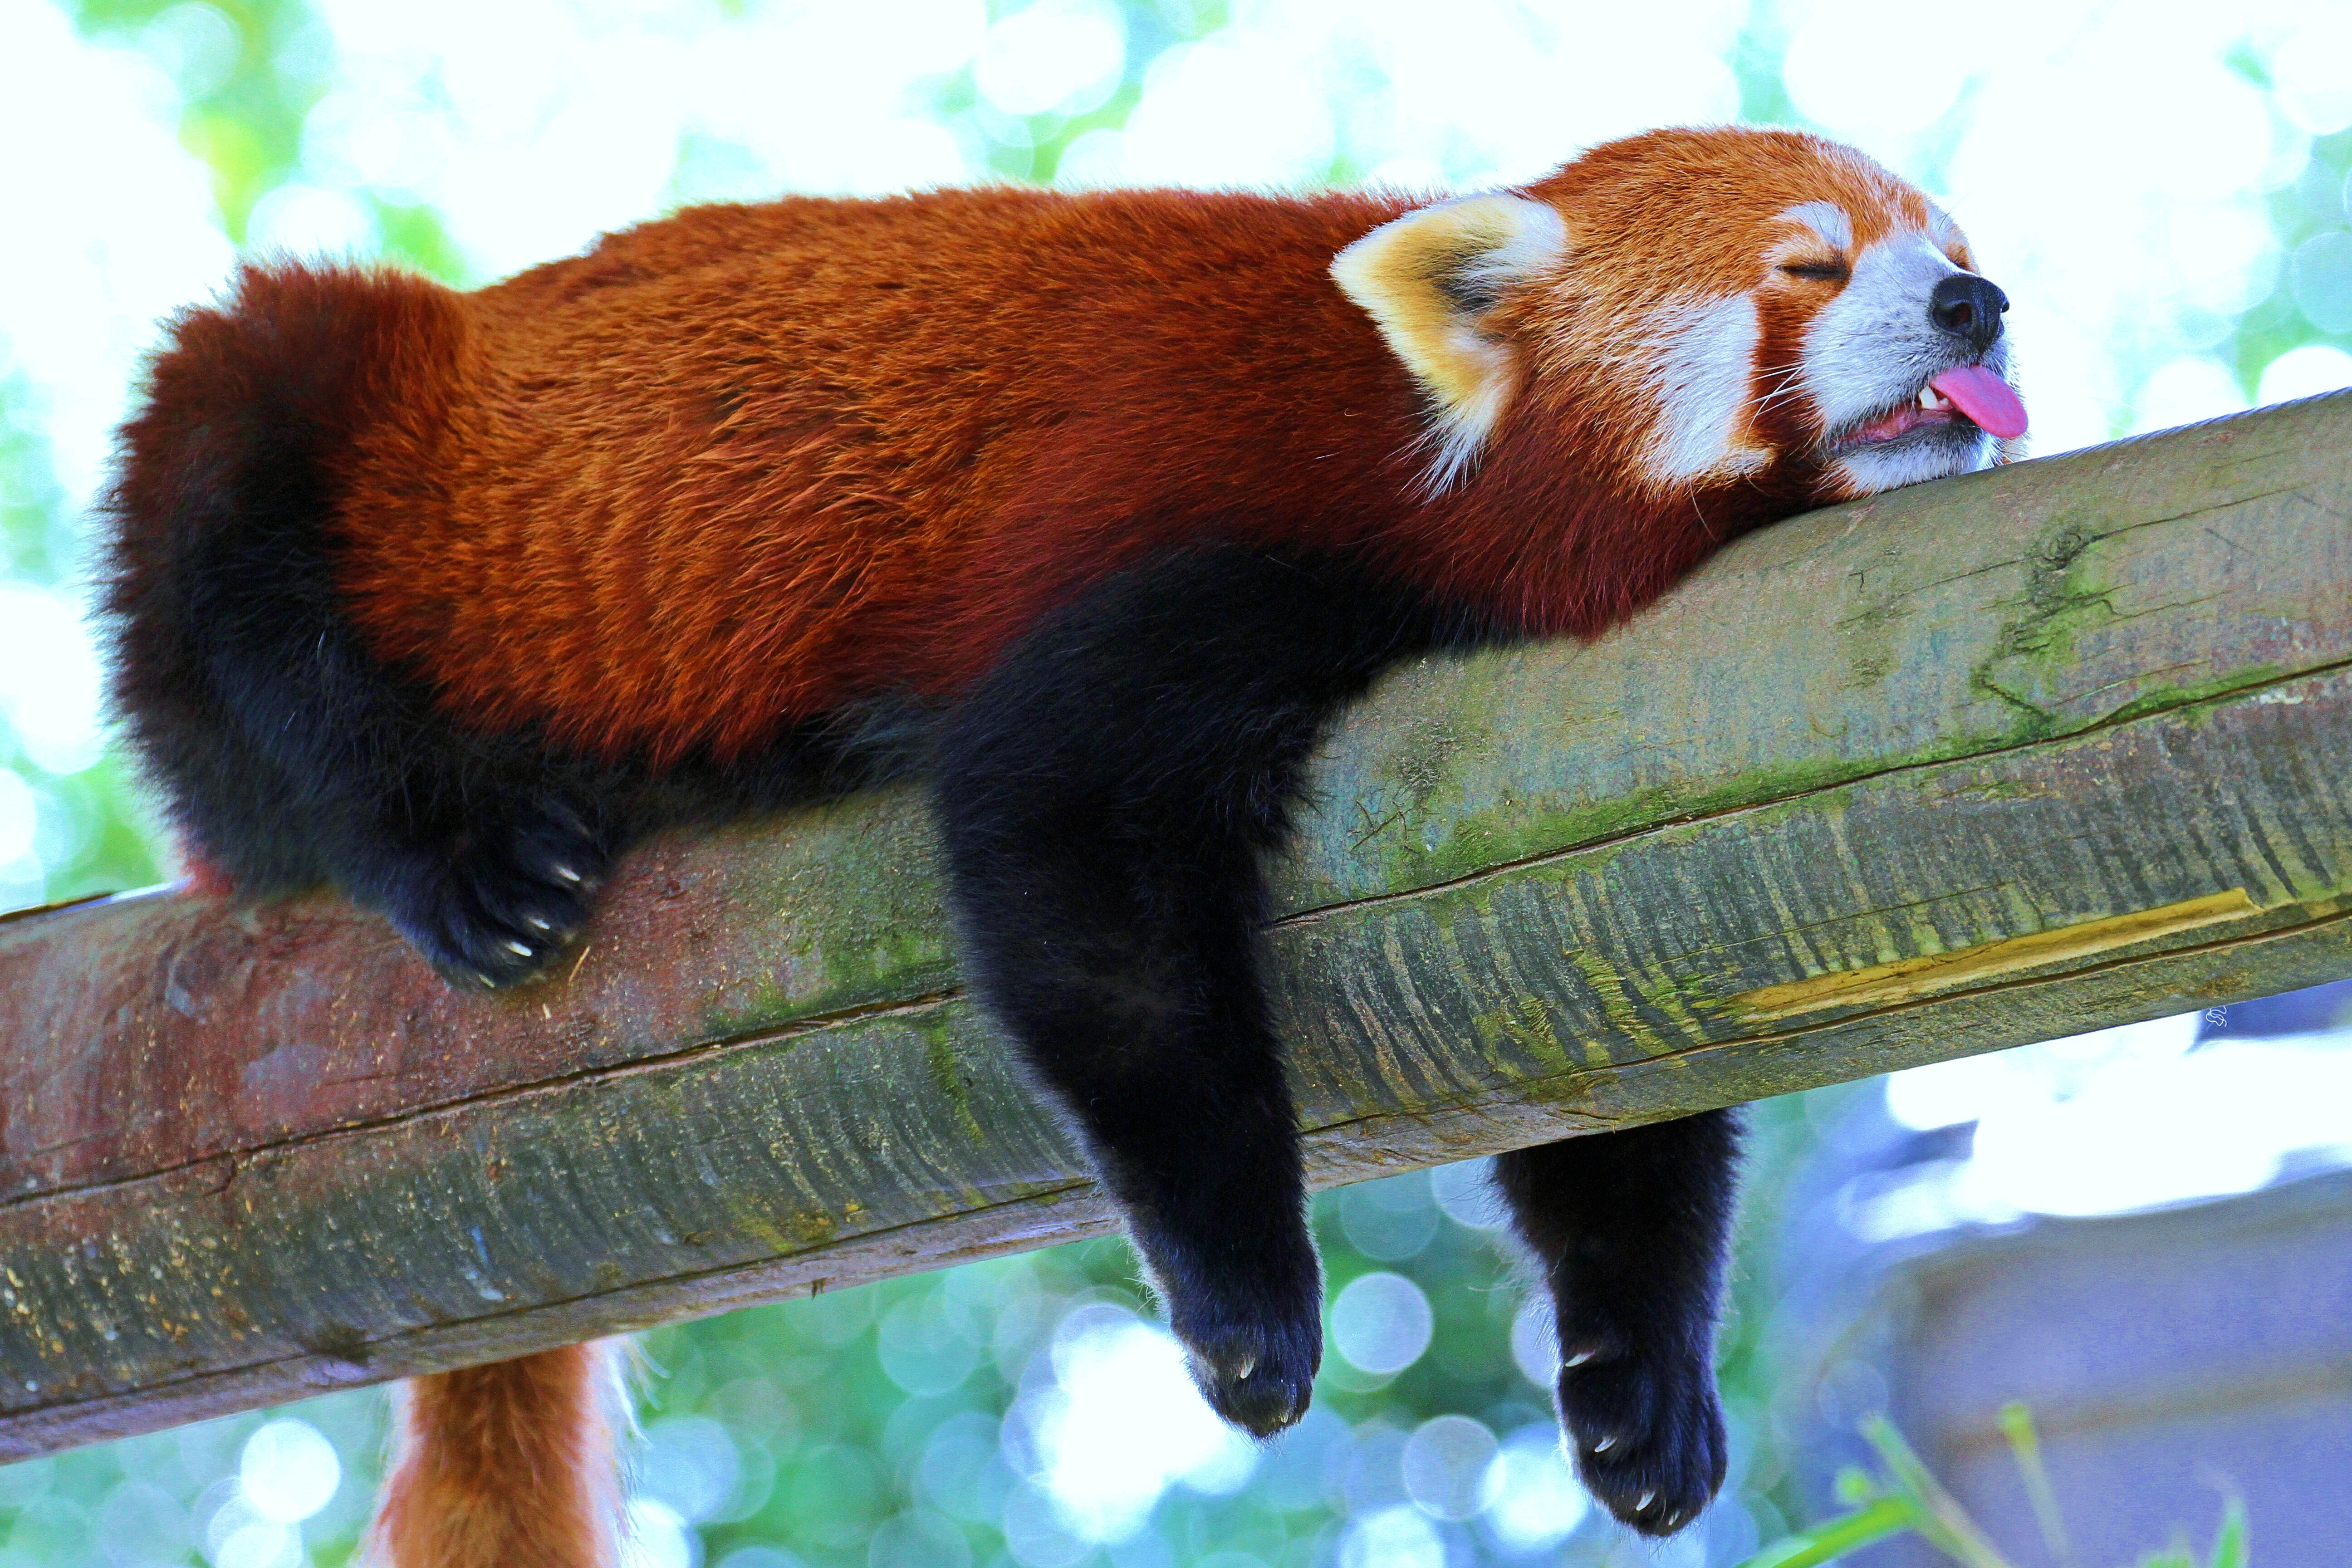 60324 download wallpaper Animals, Panda, Little Panda, Small Panda, Red Panda, Branch, Relaxation, Rest, Sleep, Dream screensavers and pictures for free